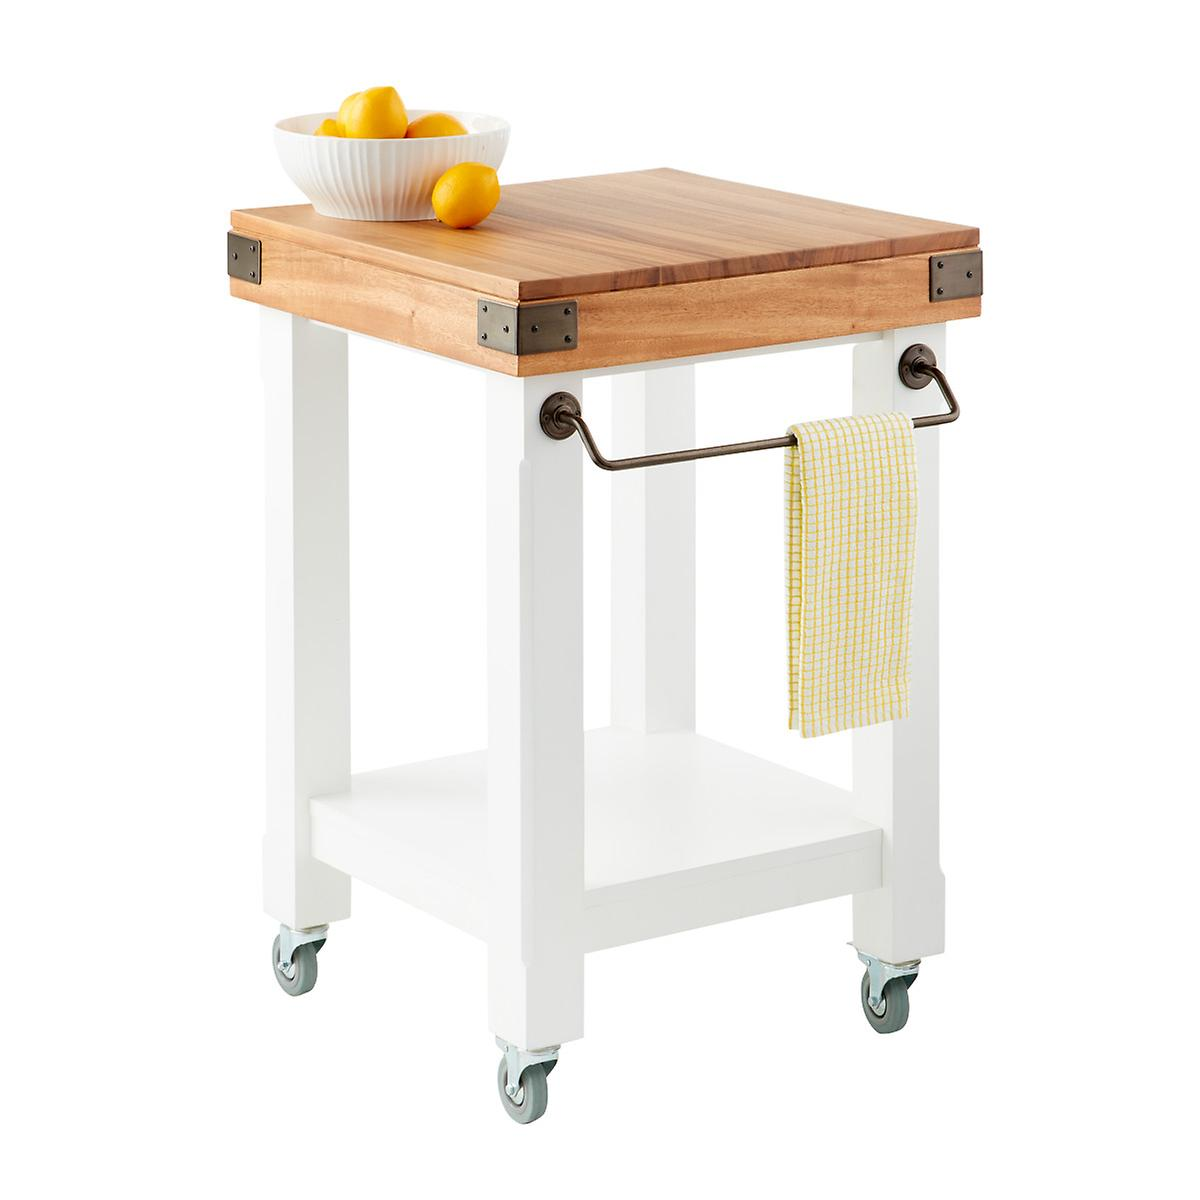 Butcher block rolling kitchen island cart the container - Small butcher block island ...